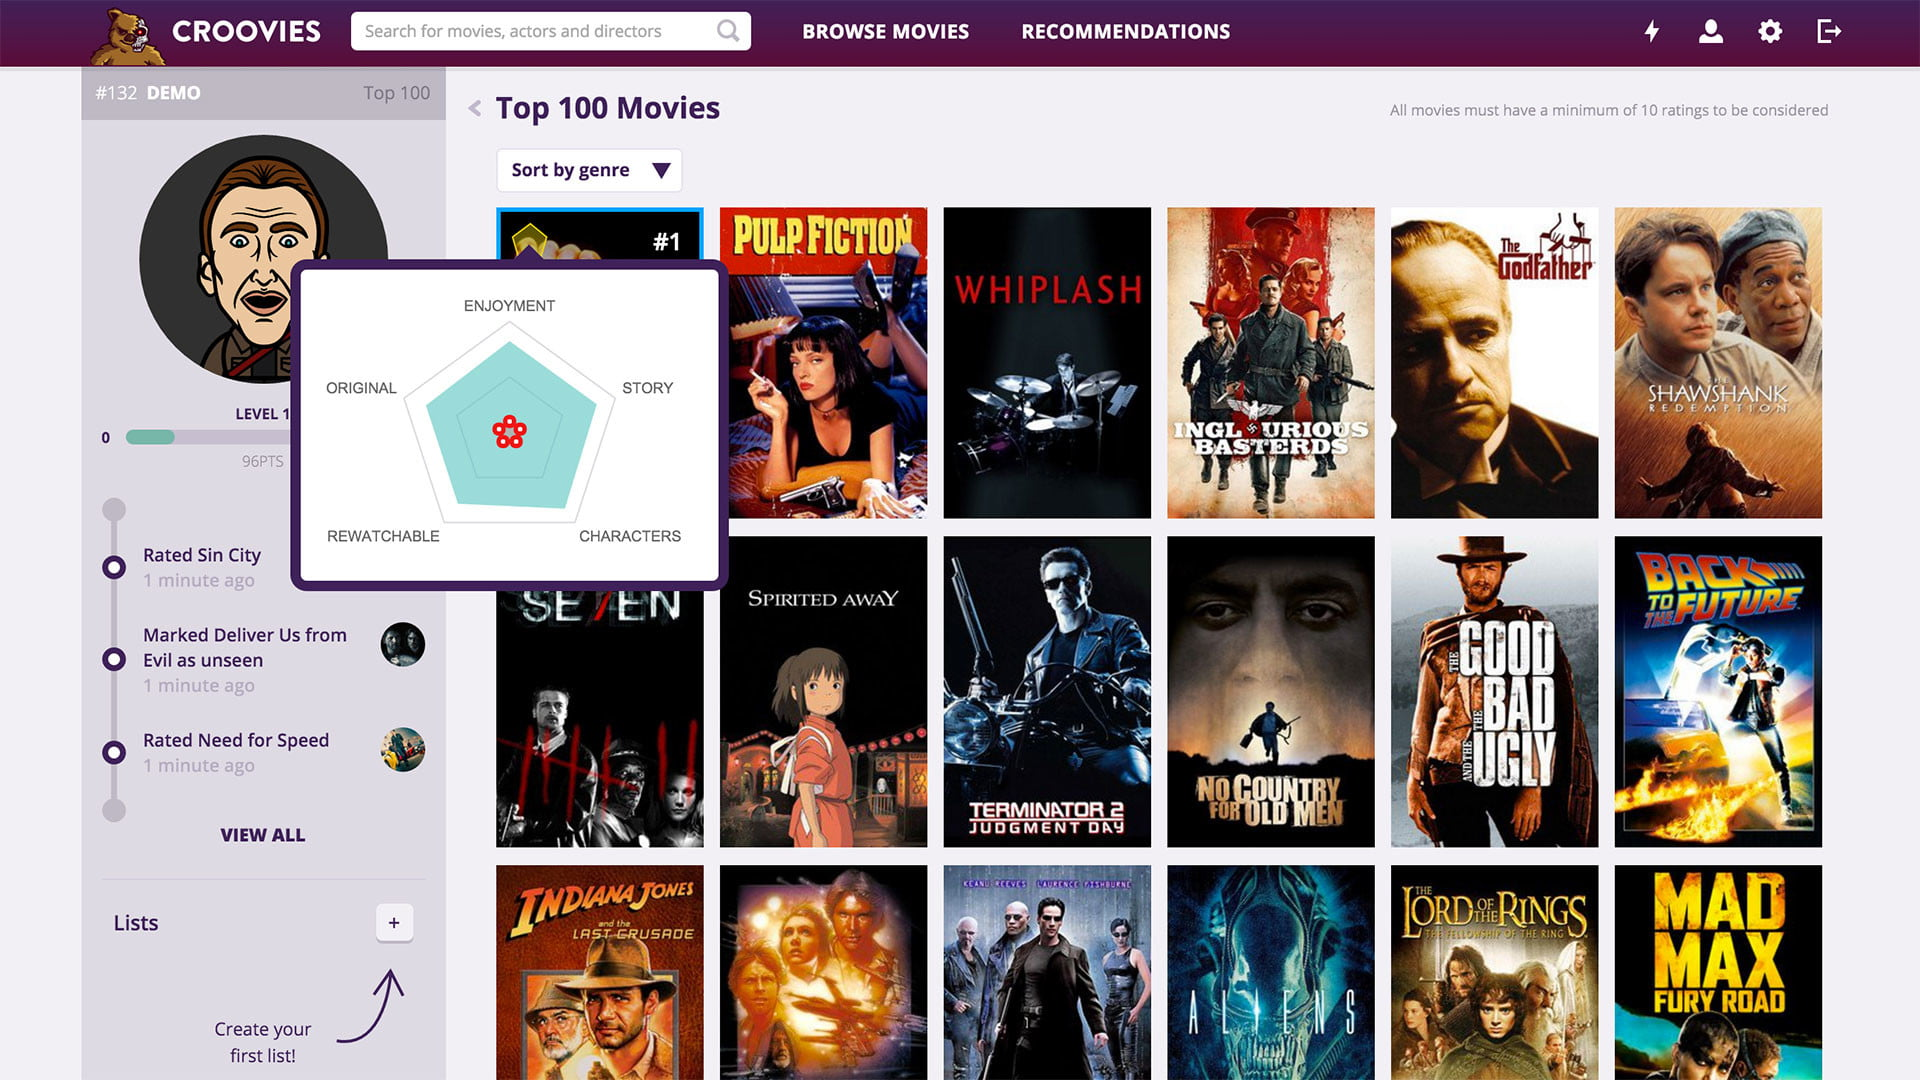 croovies movie ratings and recommendations screenshot 3